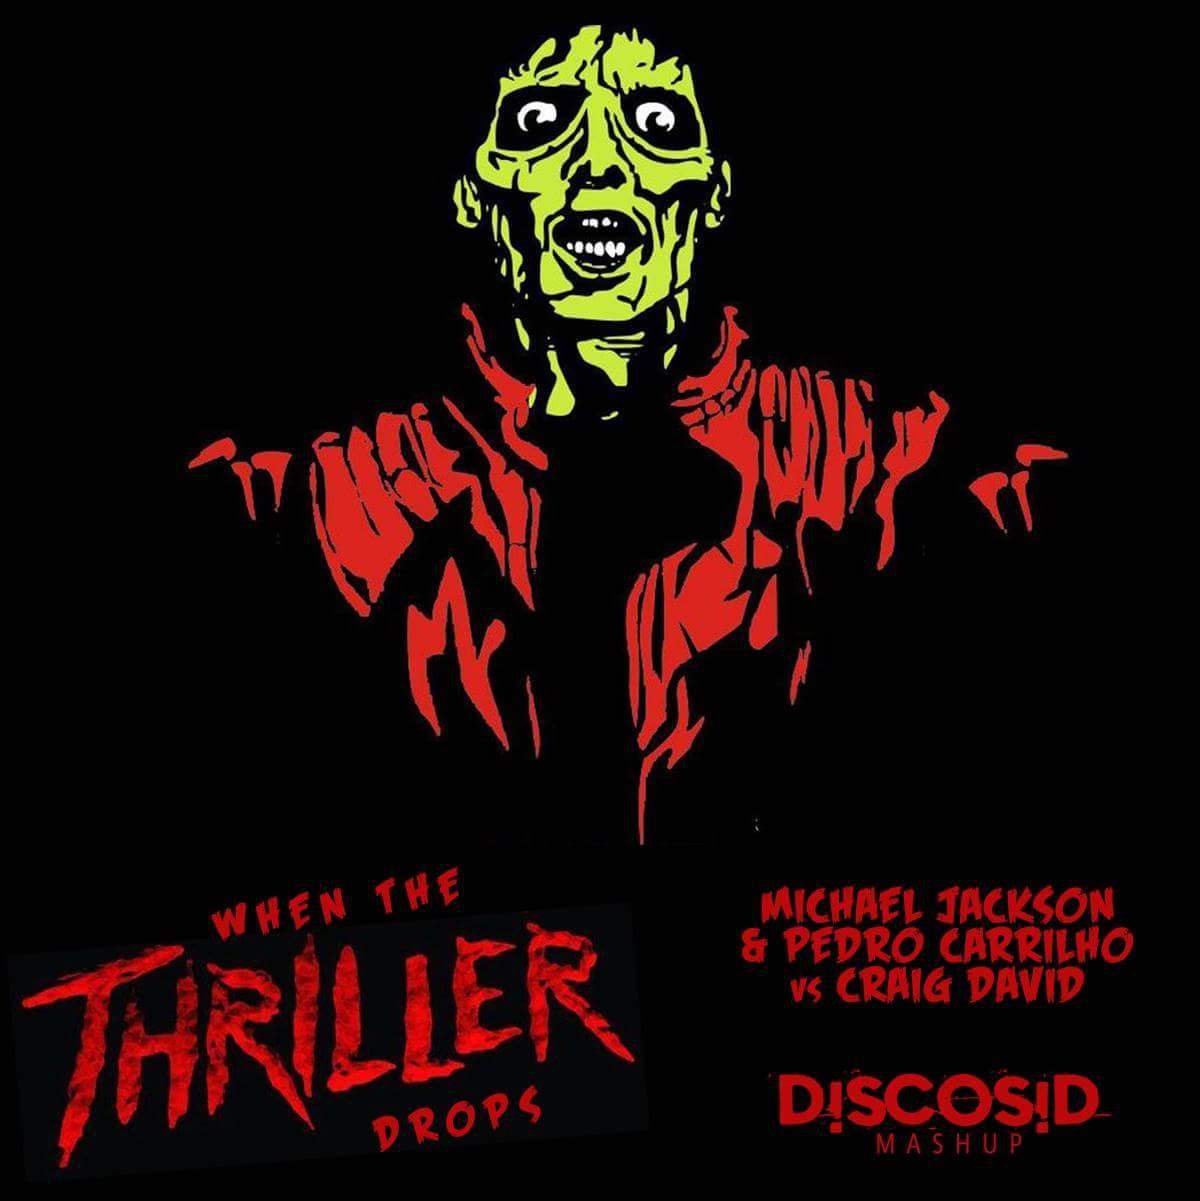 Michael Jackson & Pedro Carrilho Vs Craig David - When Thriller Drops You Know What To Do (Discosid Mashup)